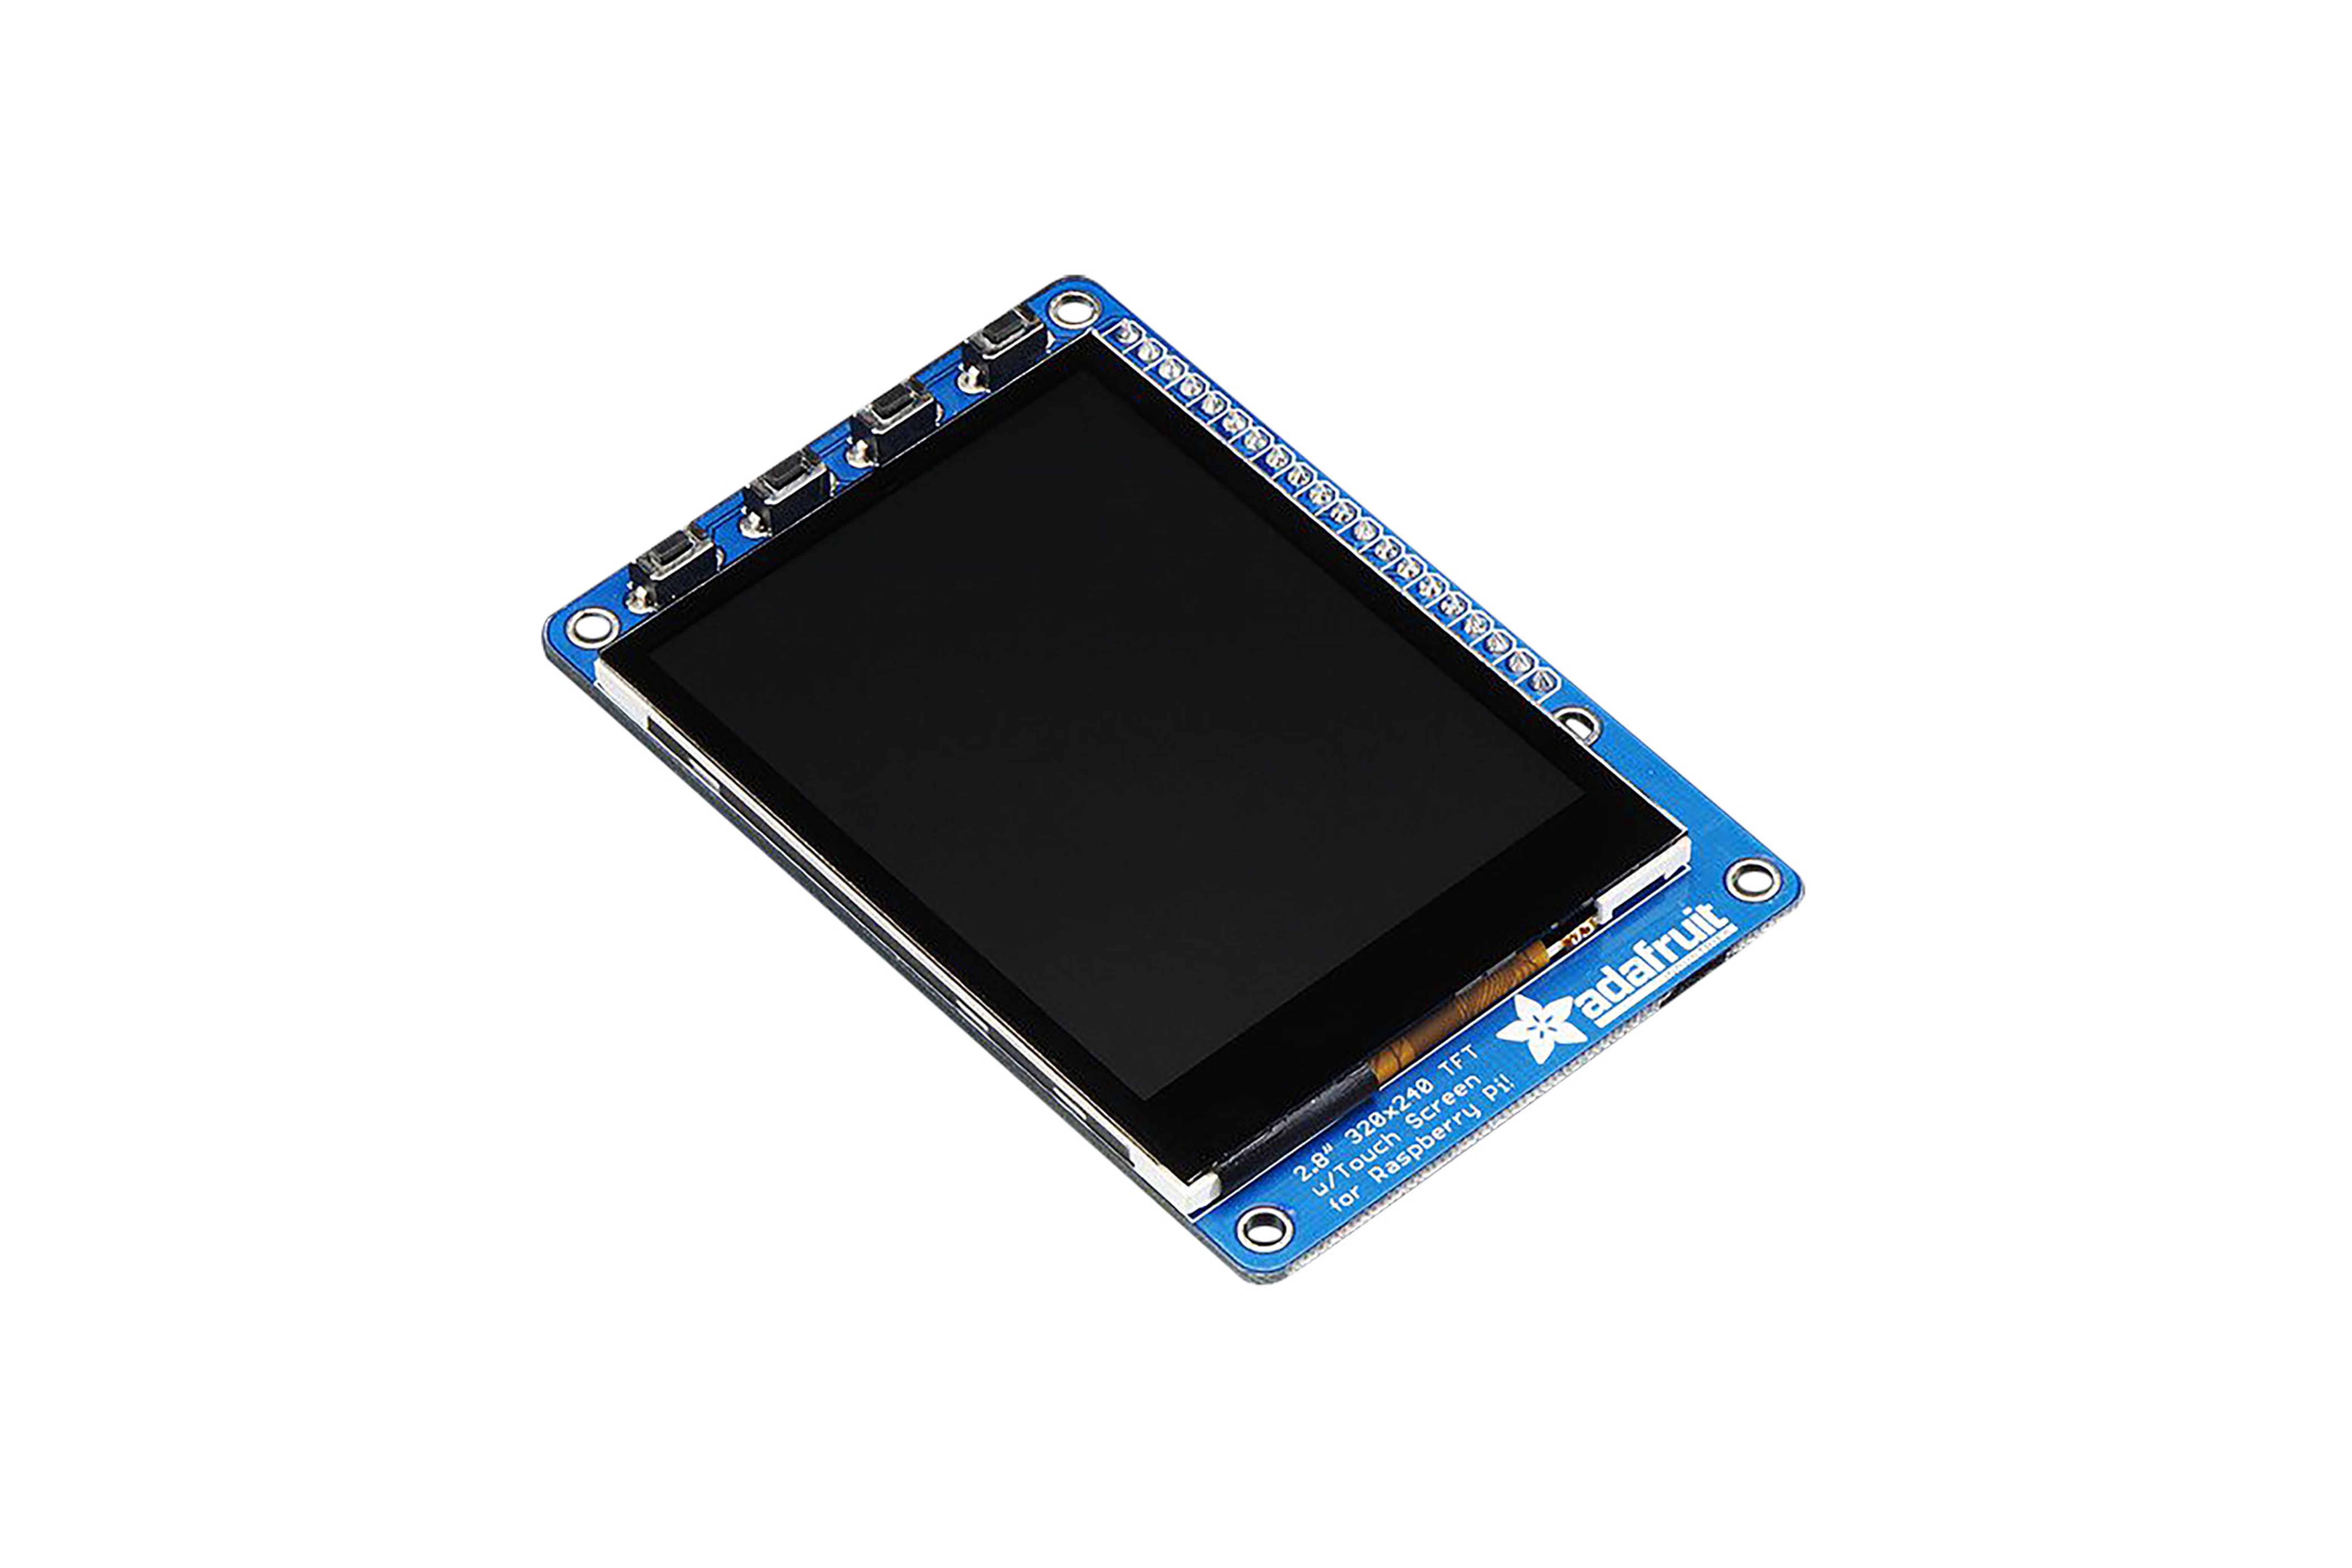 PITFT PLUS 2,8-INCH CAPACITIEF TOUCHSCREEN